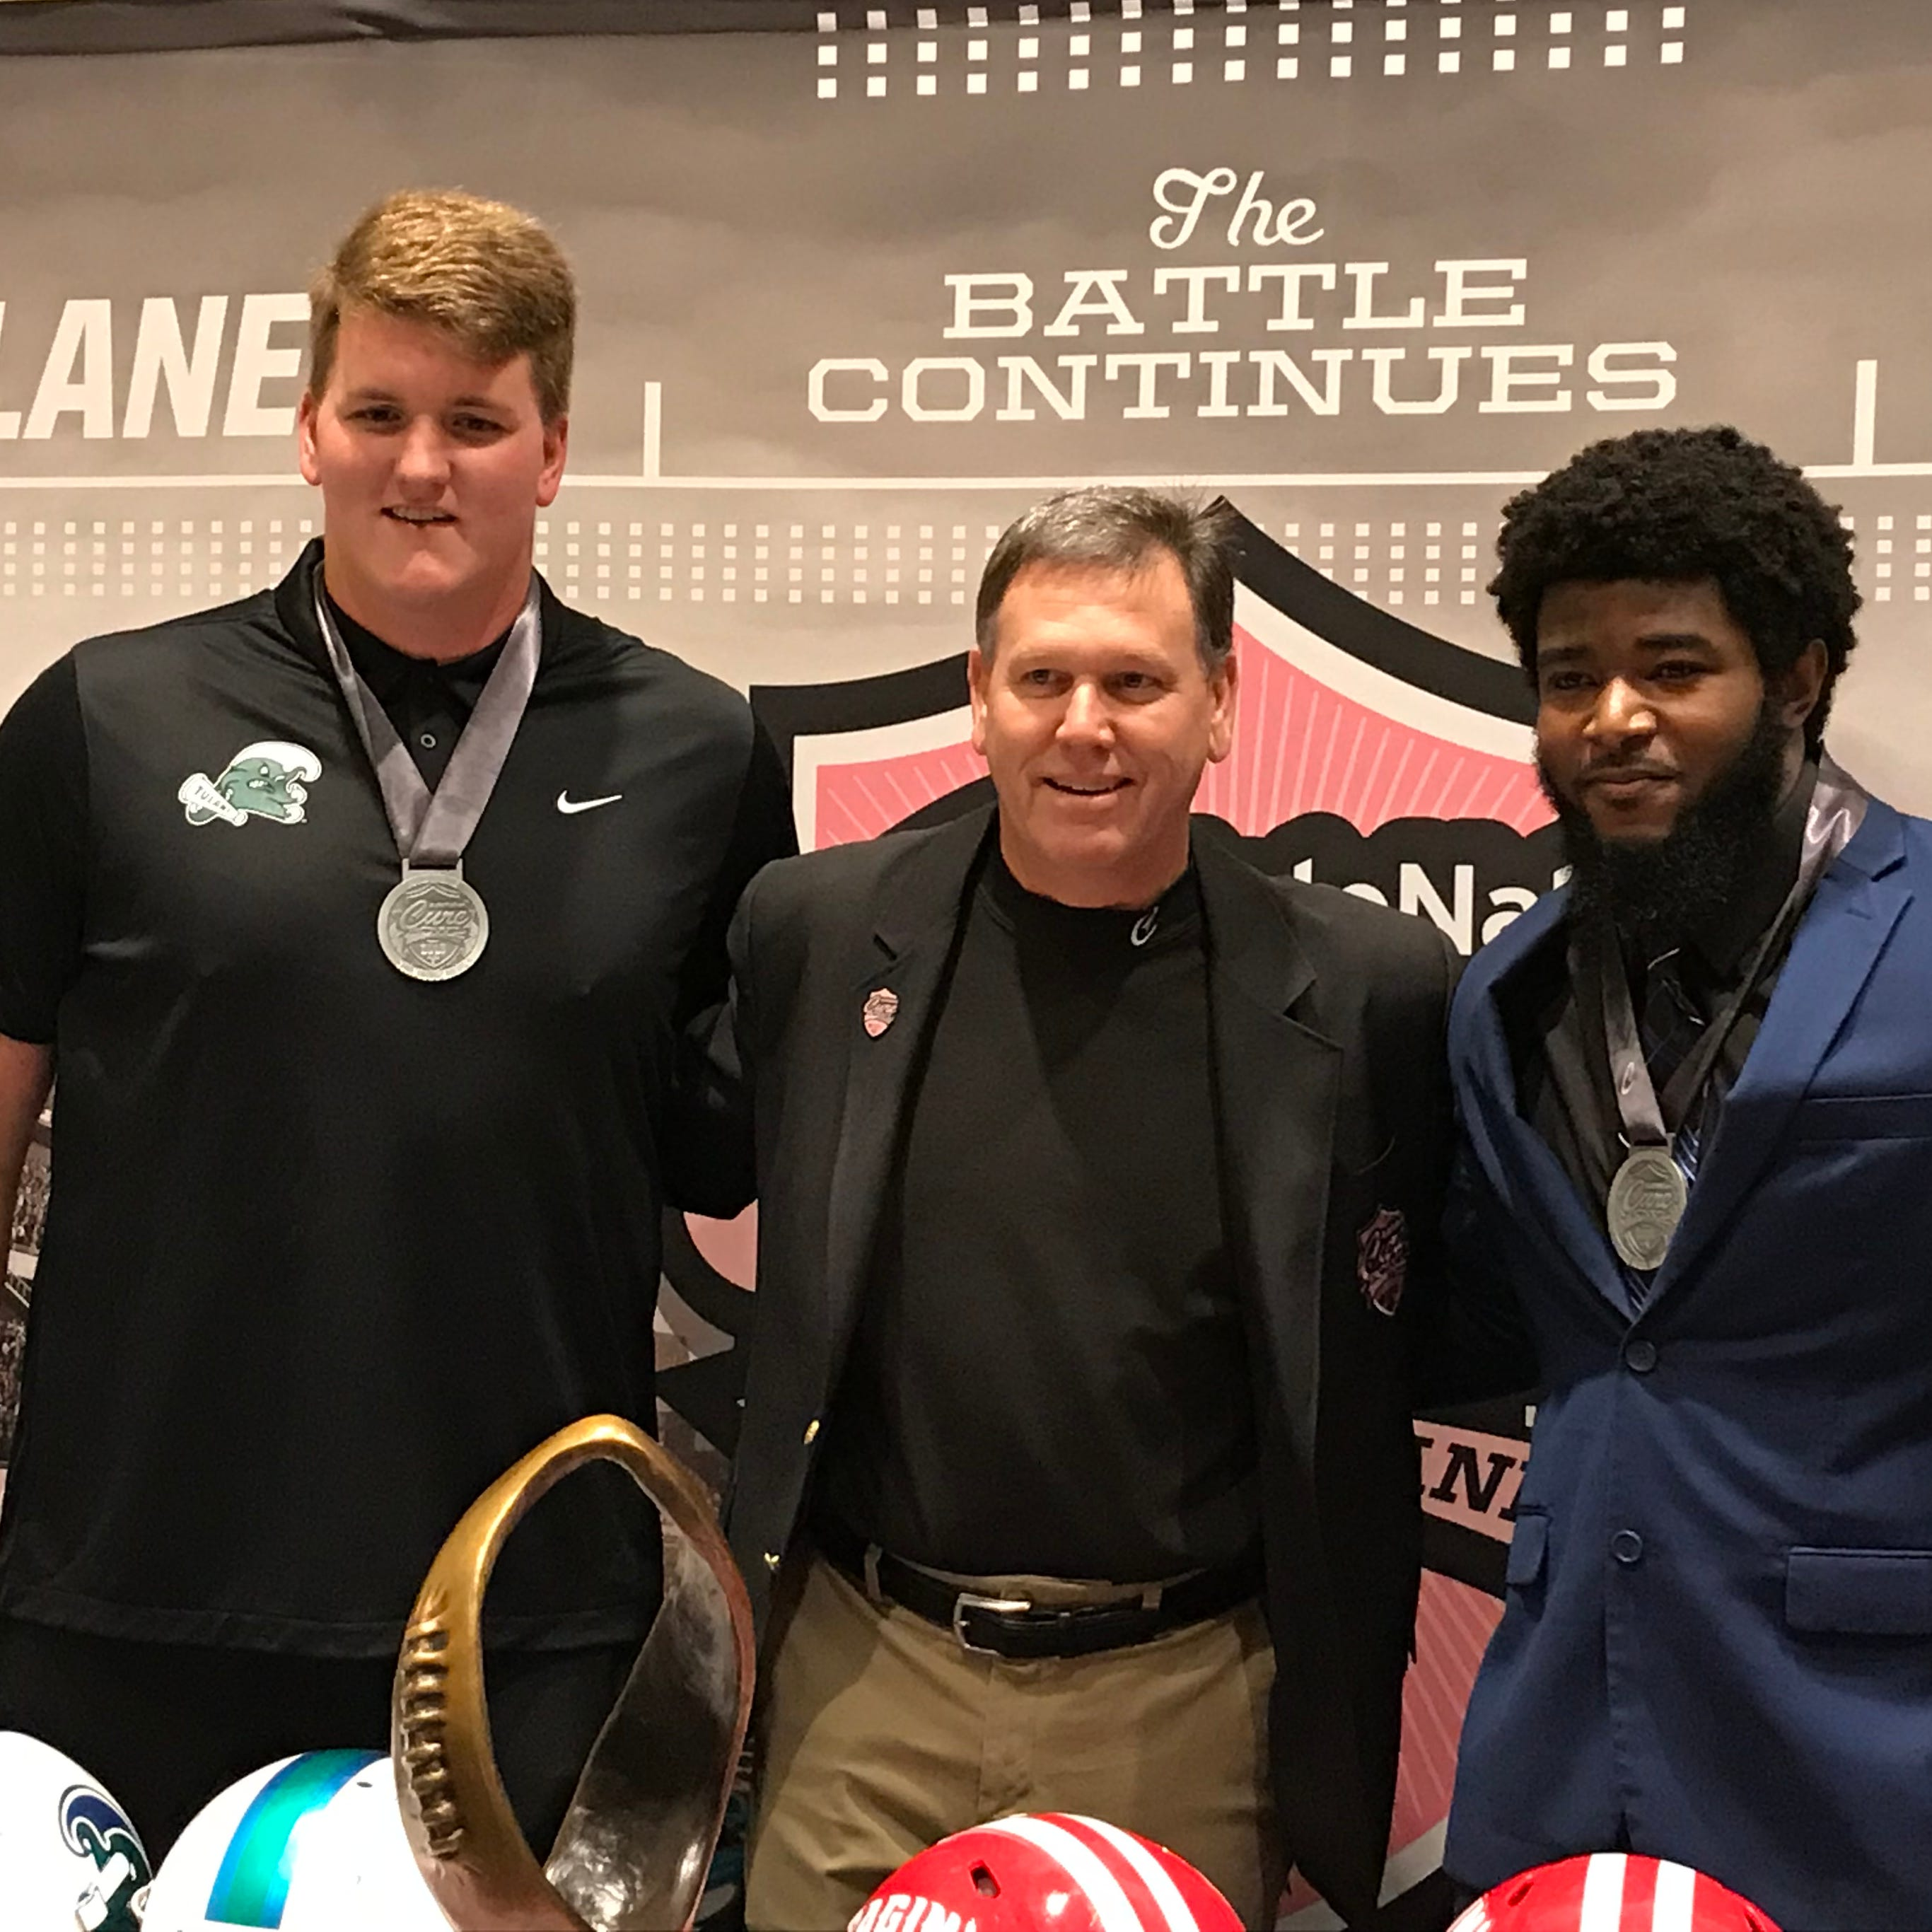 Tulane offensive lineman John Leglue, left, and UL linebacker Alonzo Brown, right, were awarded medals for exemplary community service by Cure Bowl executive director Alan Gooch, middle.